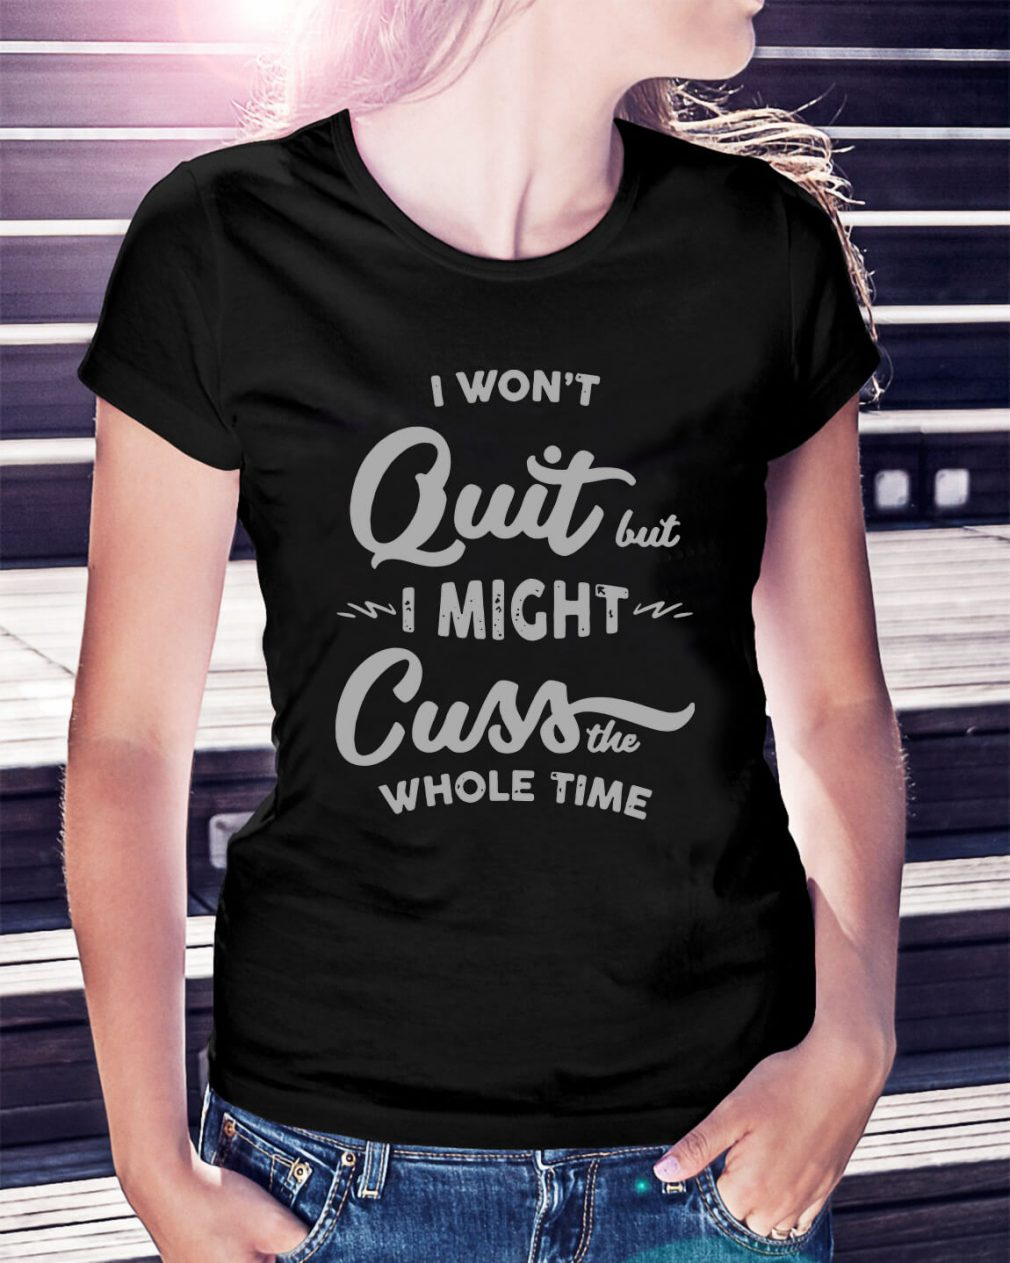 I won't quit but I might cuss the whole time Ladies Tee